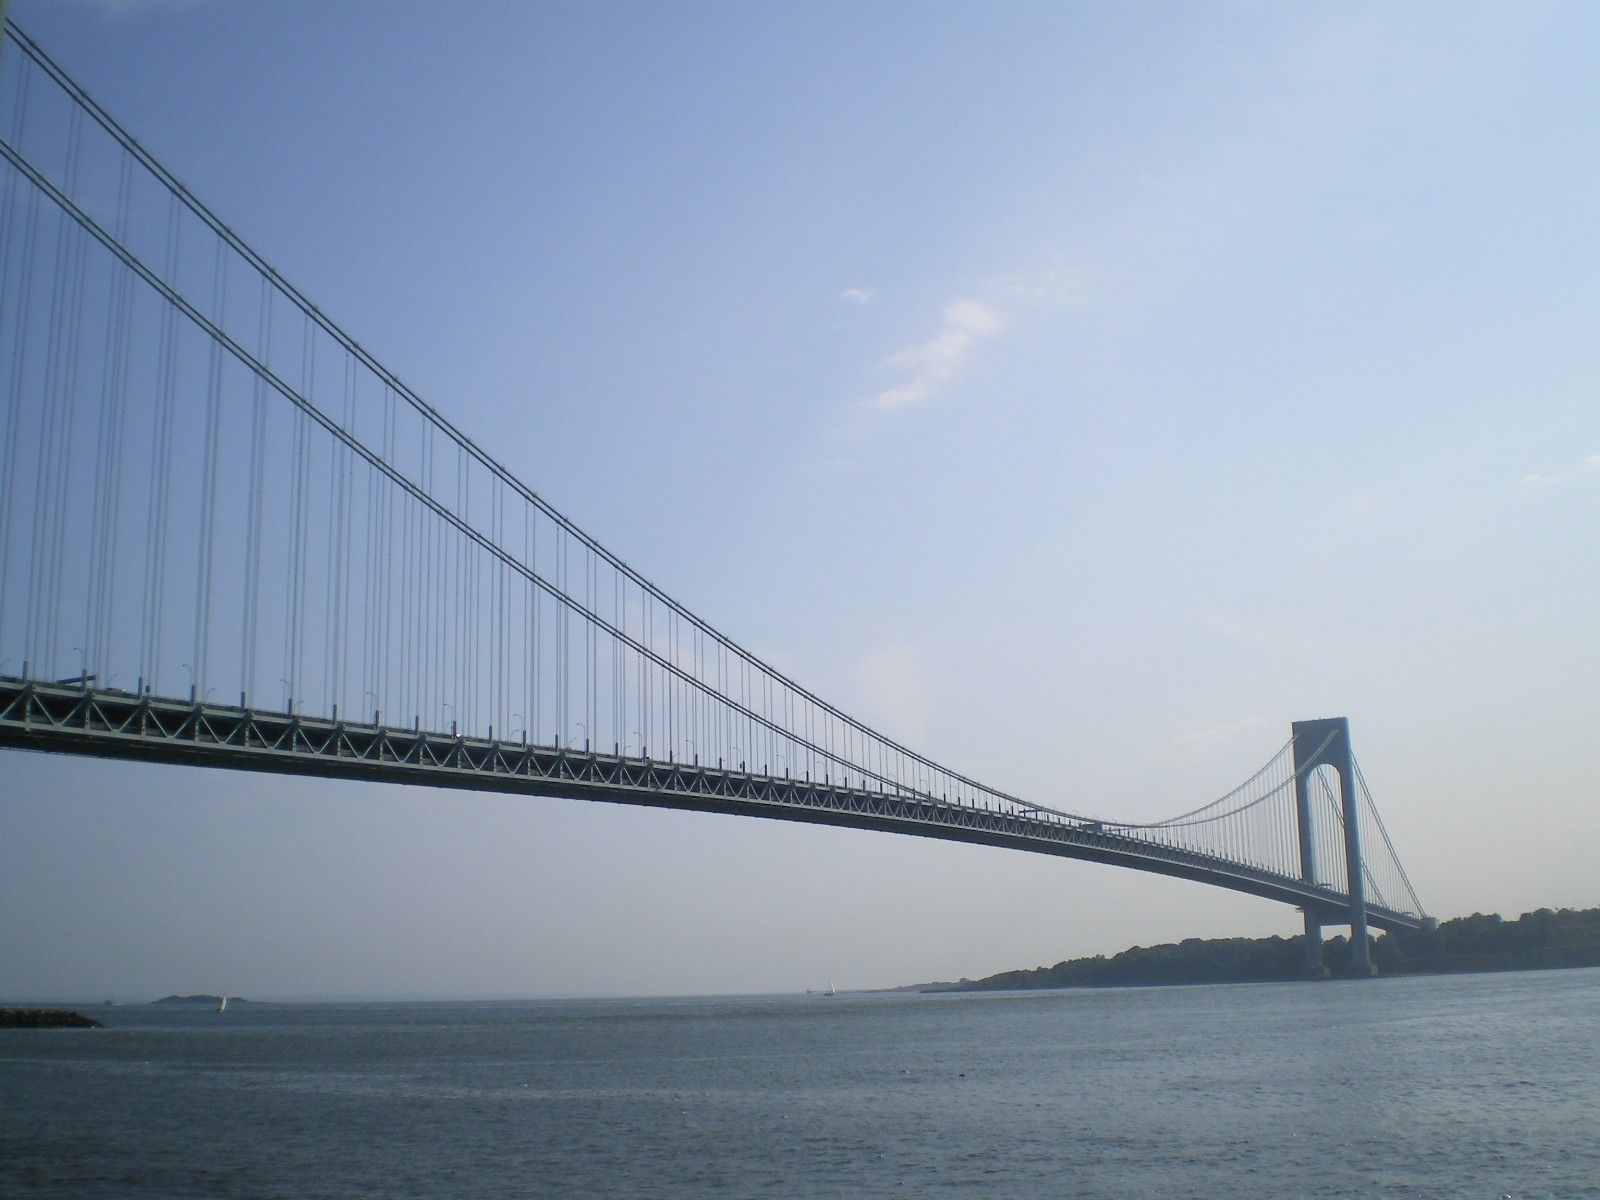 verrazano-narrows bridge, new york rp for youhttp://fernando